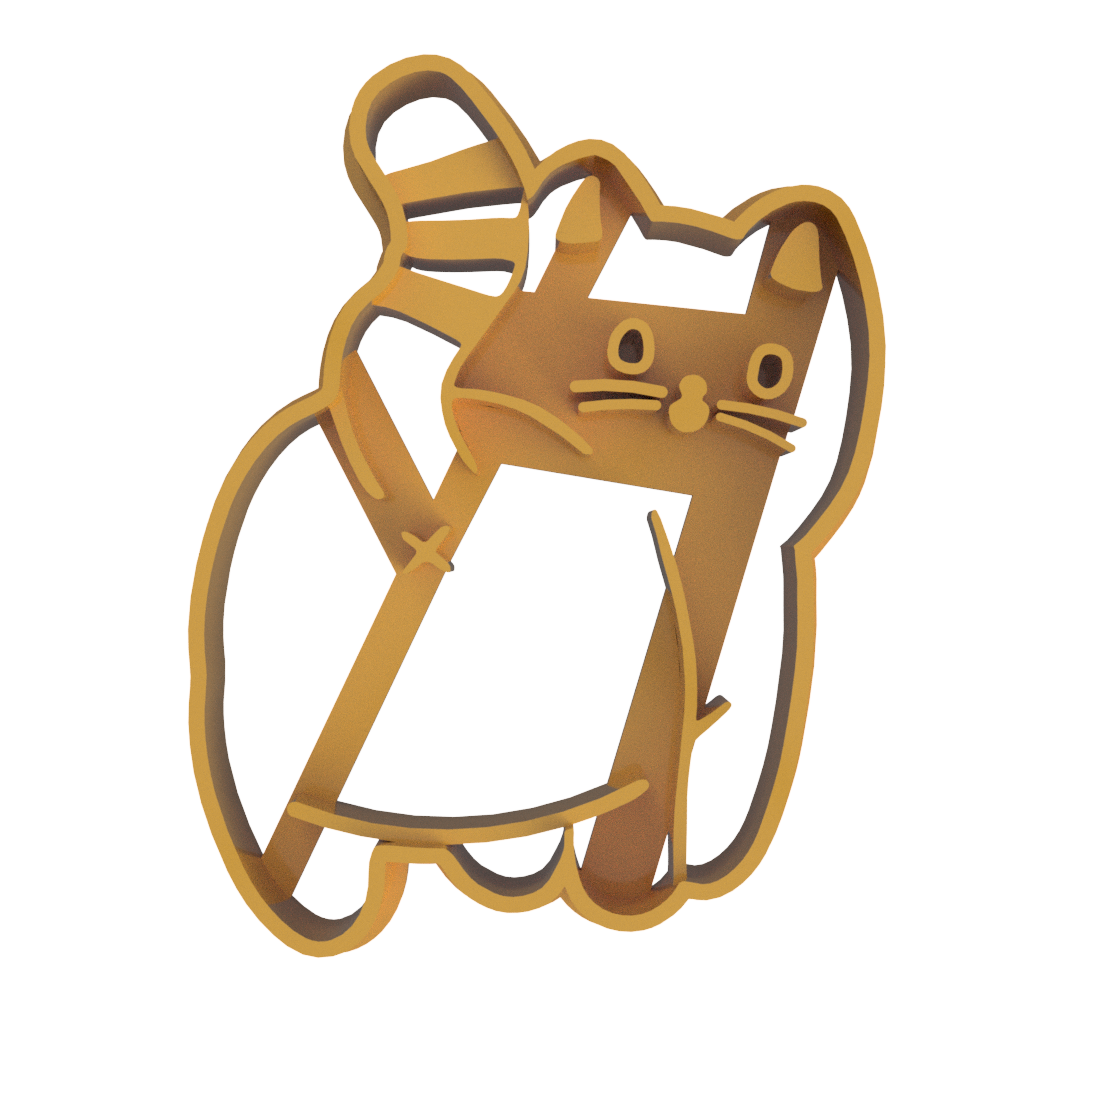 Cat butt 3 v2.png Download STL file Cat Butt Cookie Cutter V3 (Commercial Version) • 3D print model, dwain